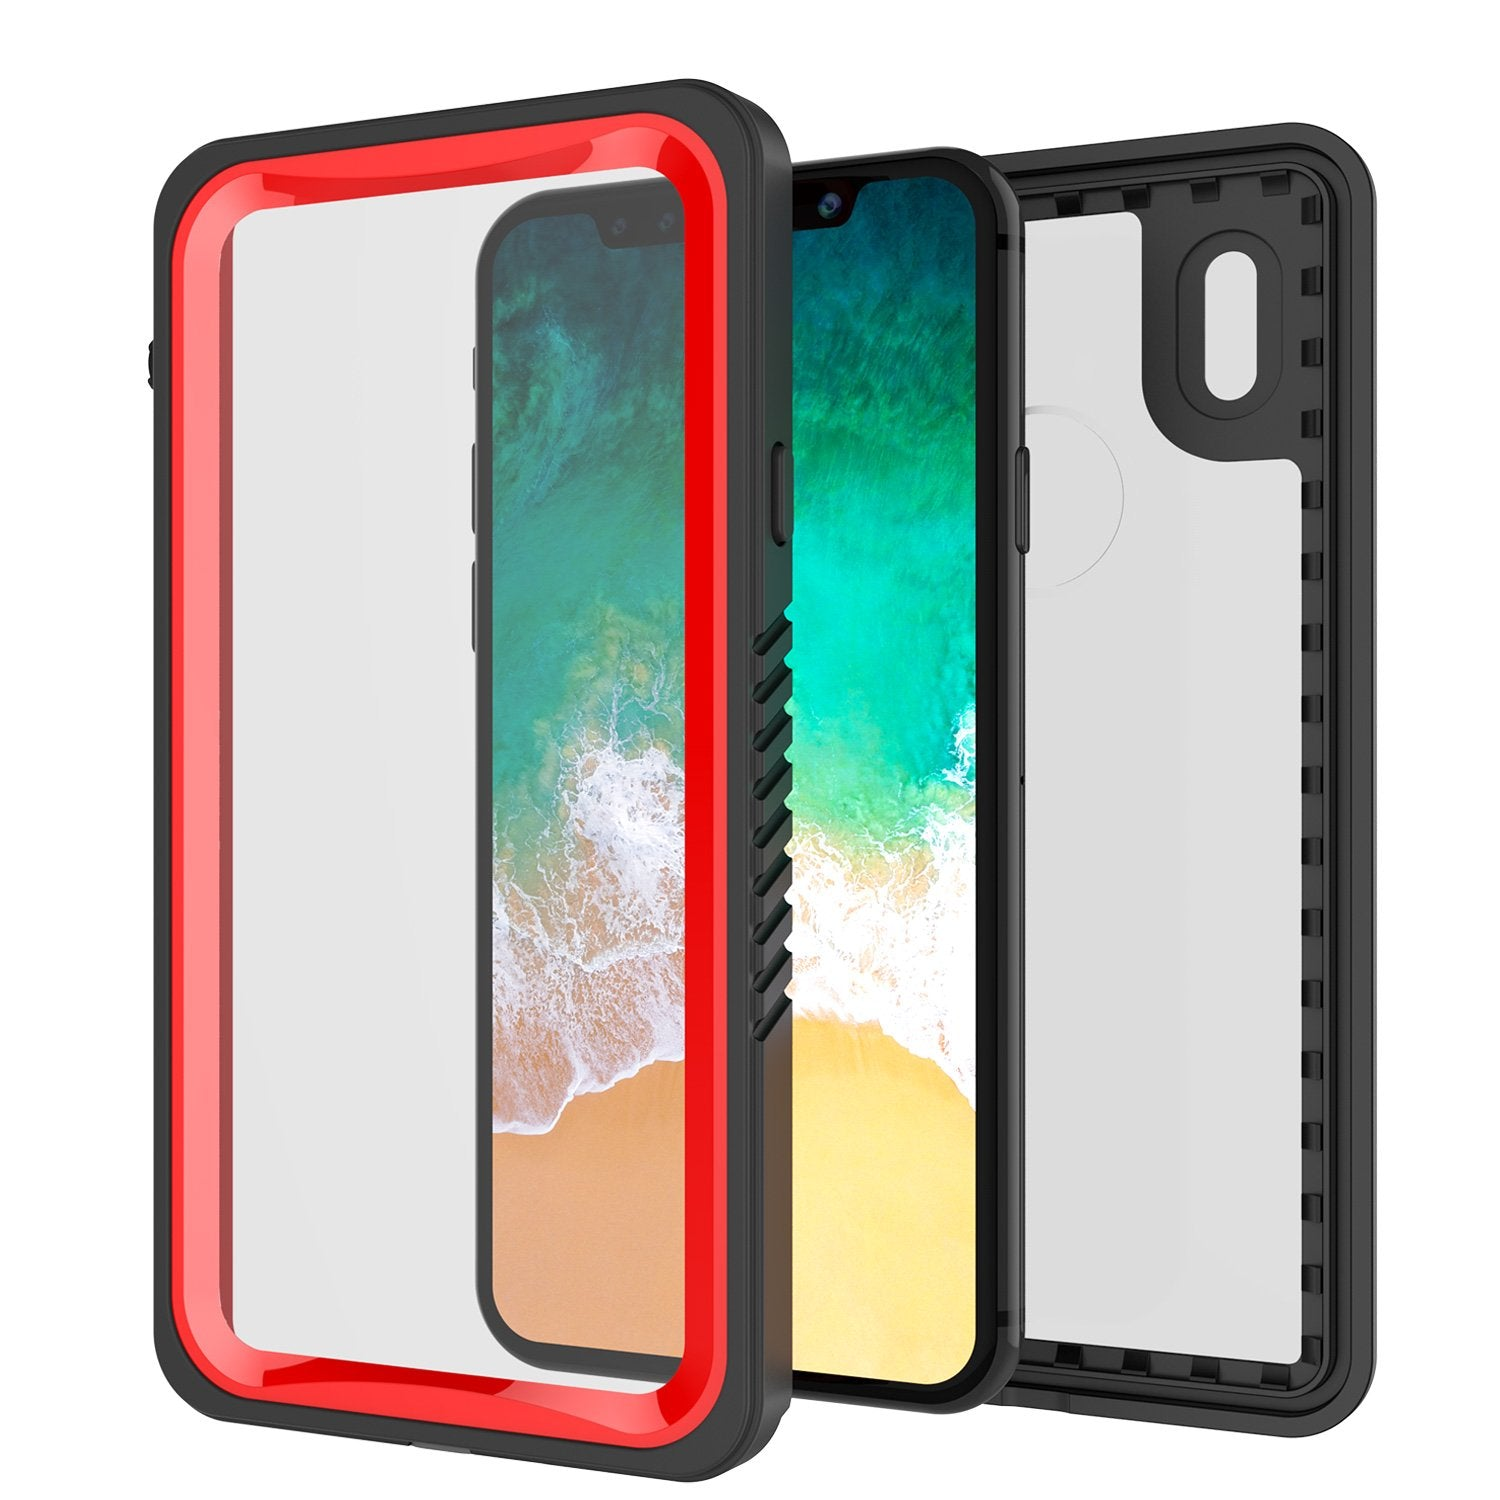 iPhone X Case, Punkcase [Extreme Series] [Slim Fit] [IP68 Certified] [Shockproof] [Snowproof] [Dirproof] Armor Cover W/ Built In Screen Protector for Apple iPhone 10 [Red]